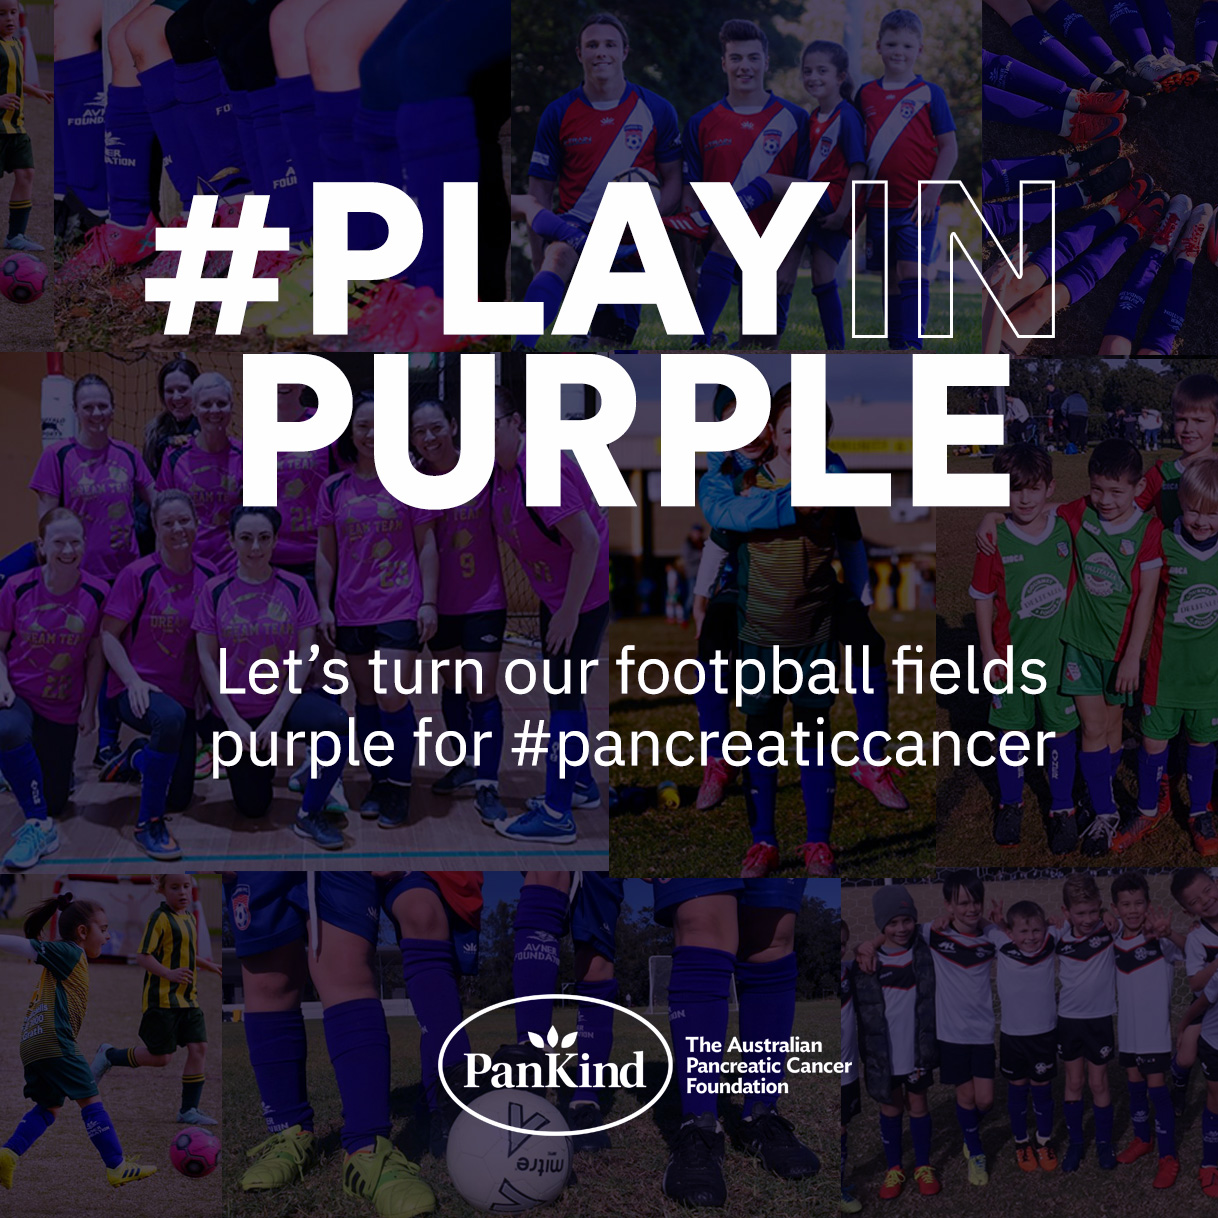 Image 1 for PlayInPurple Campaign for Pancreatic Cancer